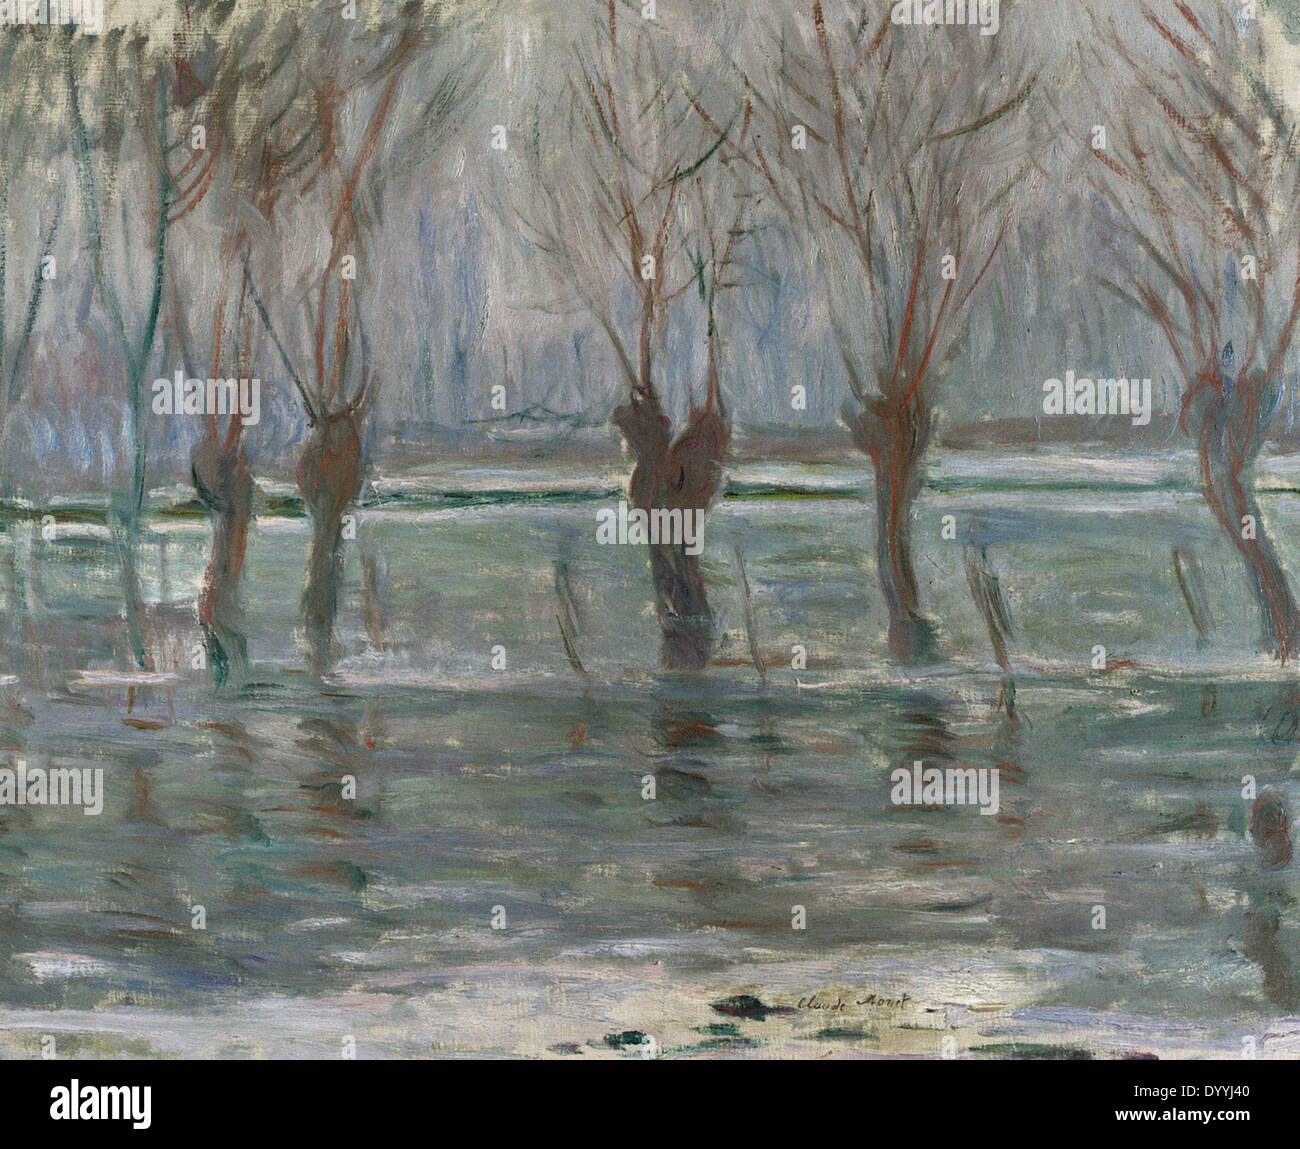 Flood Waters - Stock Image